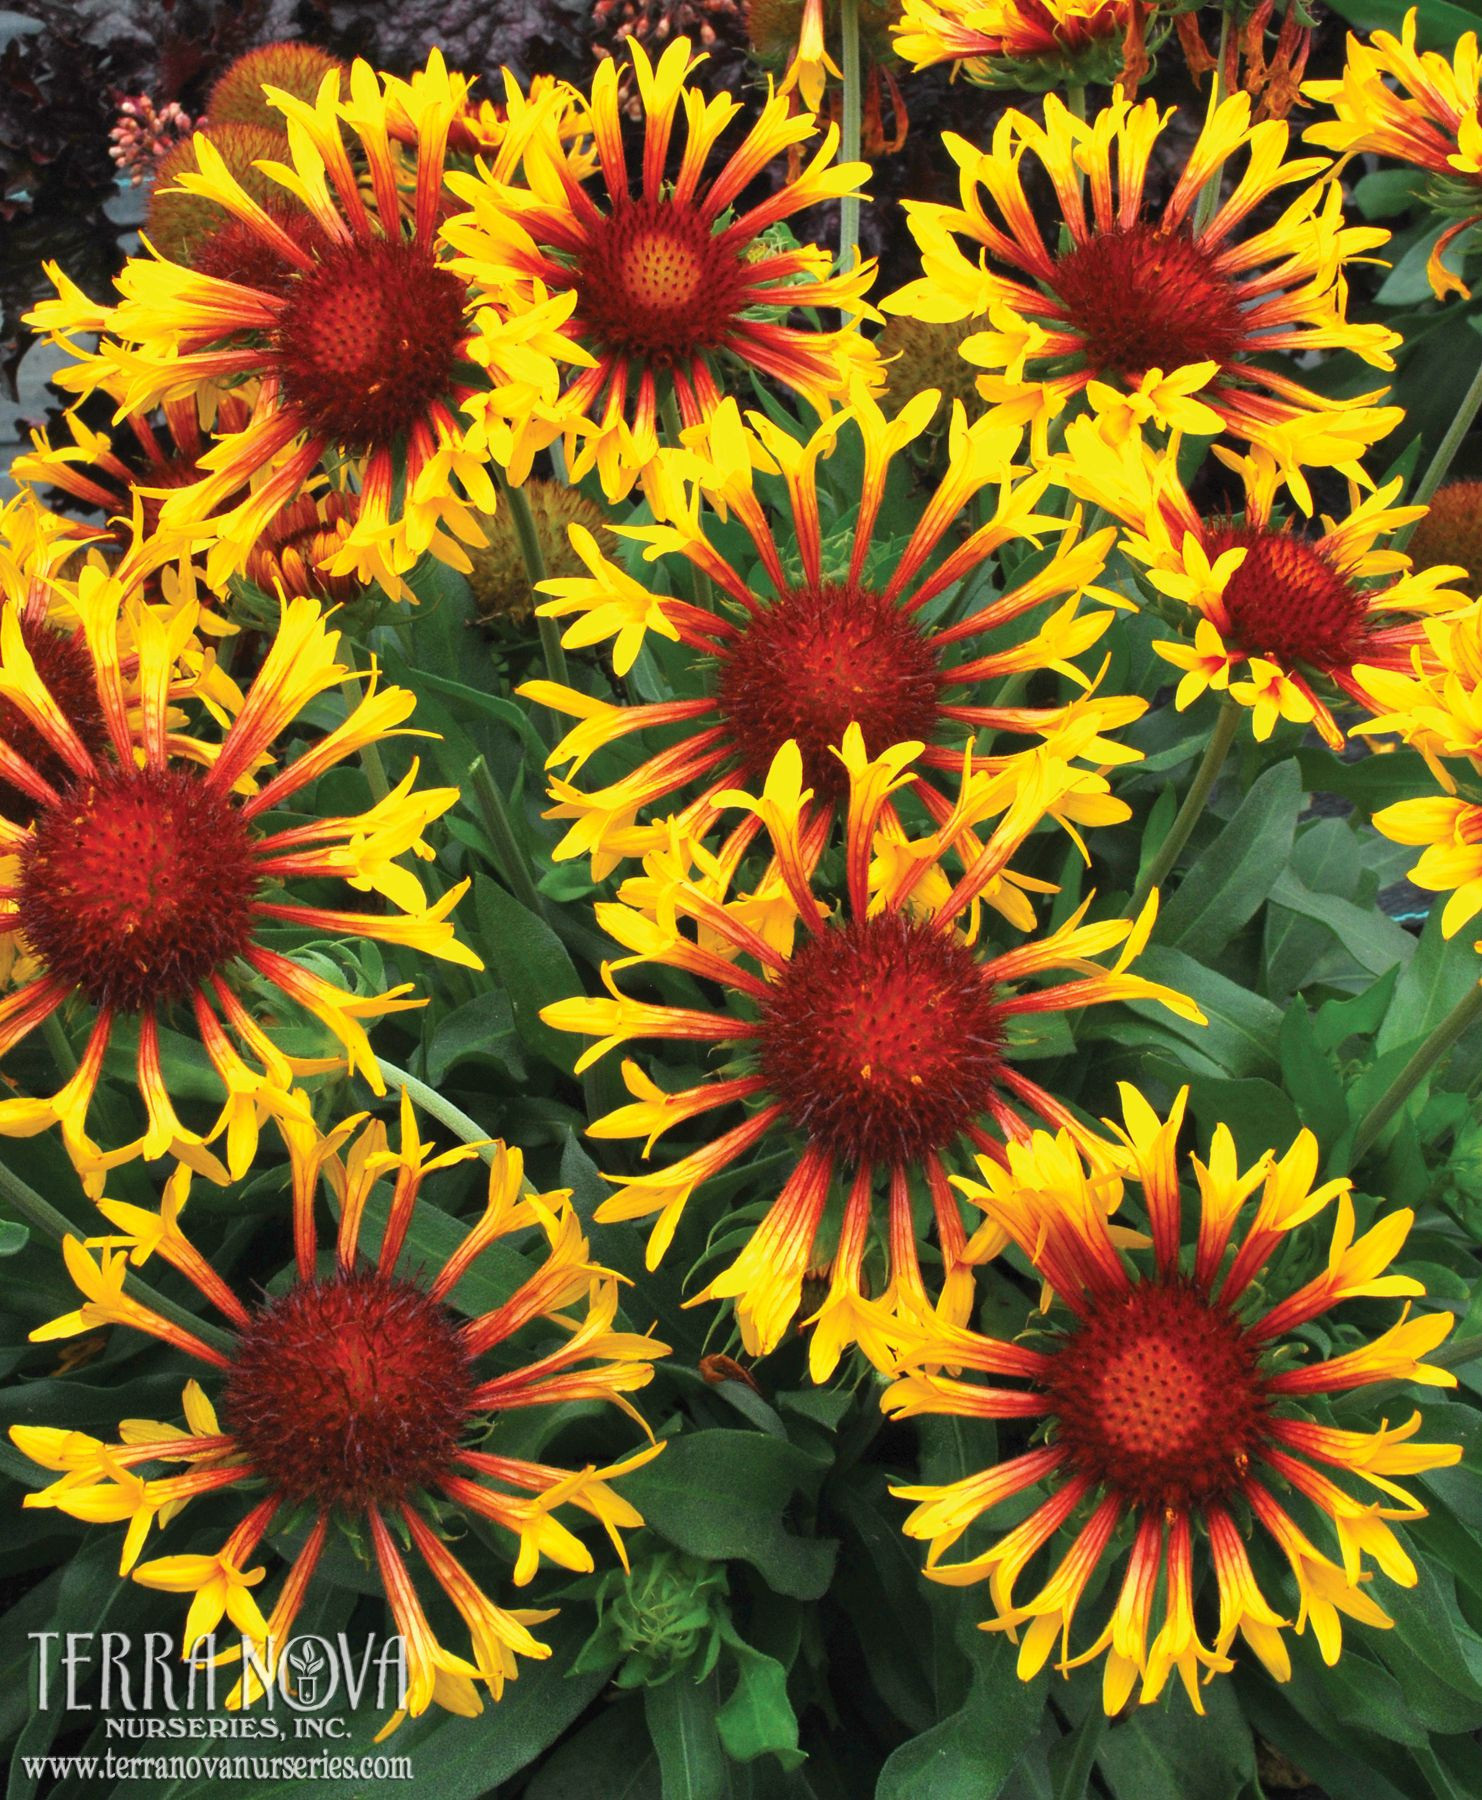 Gaillardia Sun Flare Bicolor gold and red trumpets herald Gaillardia Sun Flare The habit is very pact and a bit silvered